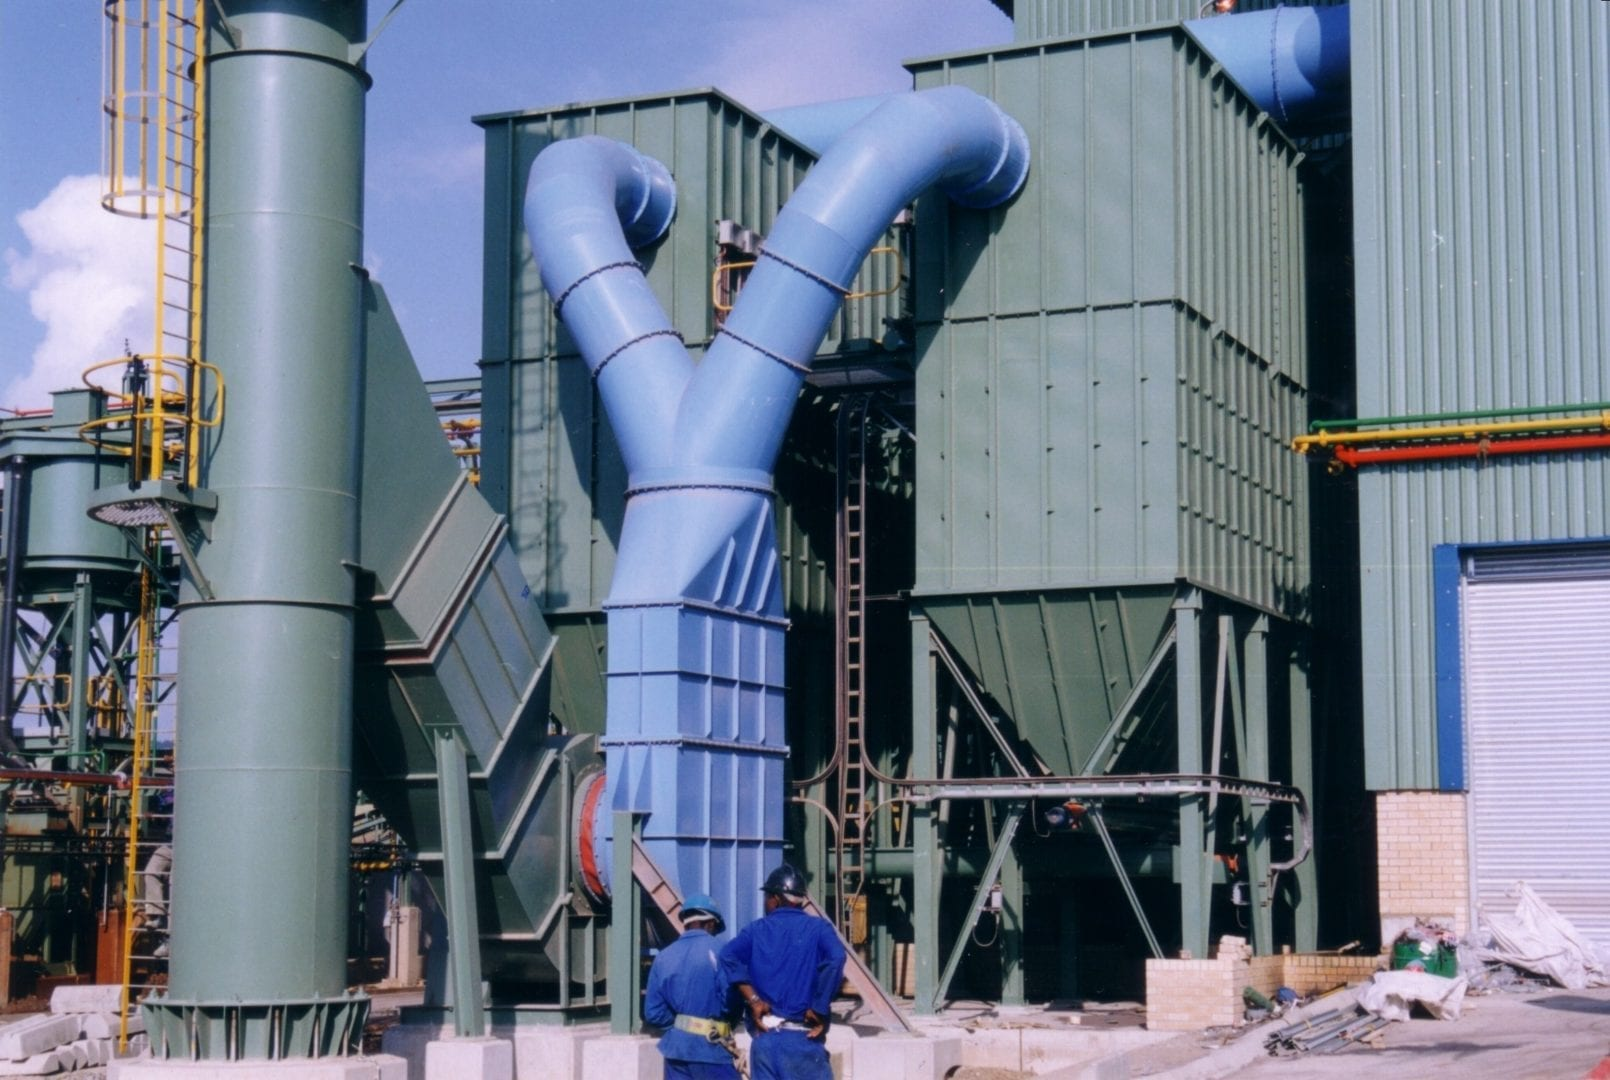 Air pollution control in winning fast-track Kenyan mineral sands contract